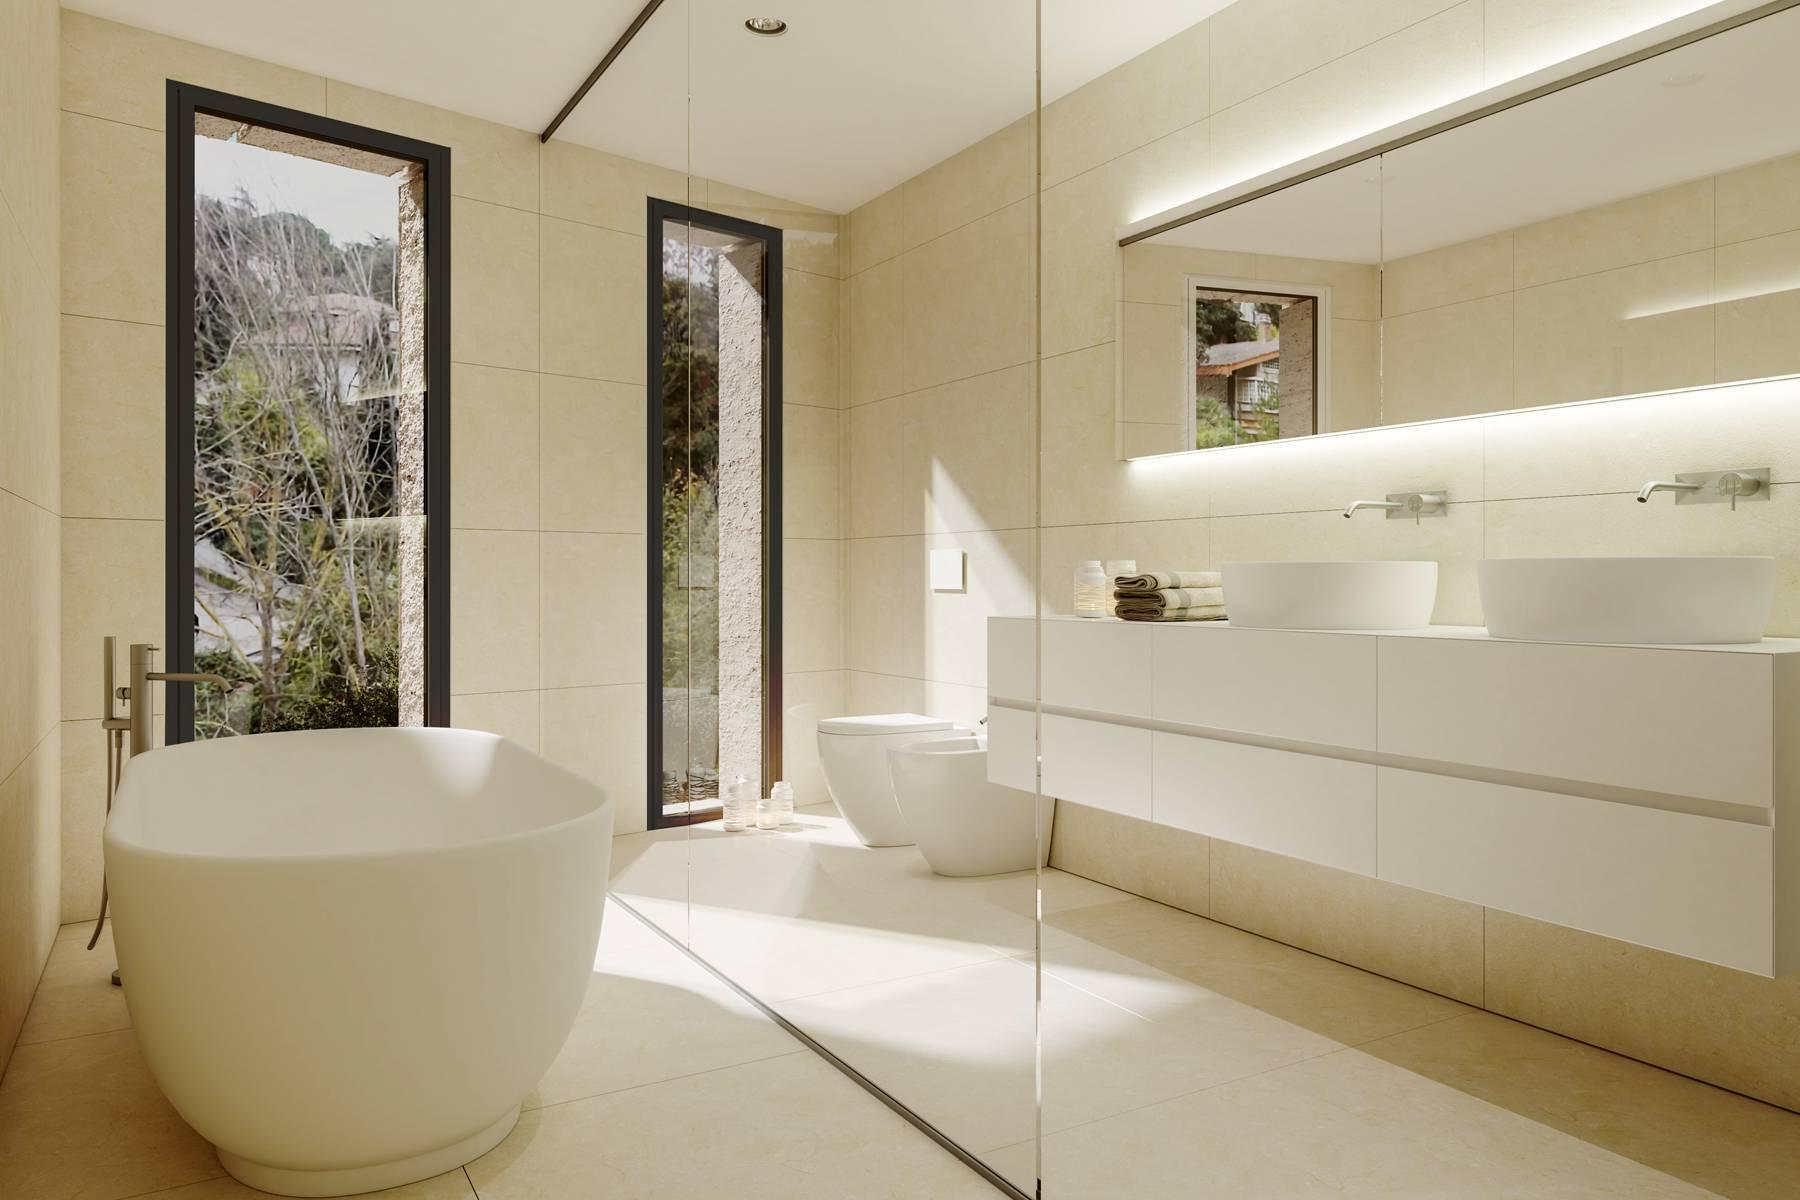 Camilluccia 535: the quiet of the countryside in the heart of Rome - Penthouse - 7